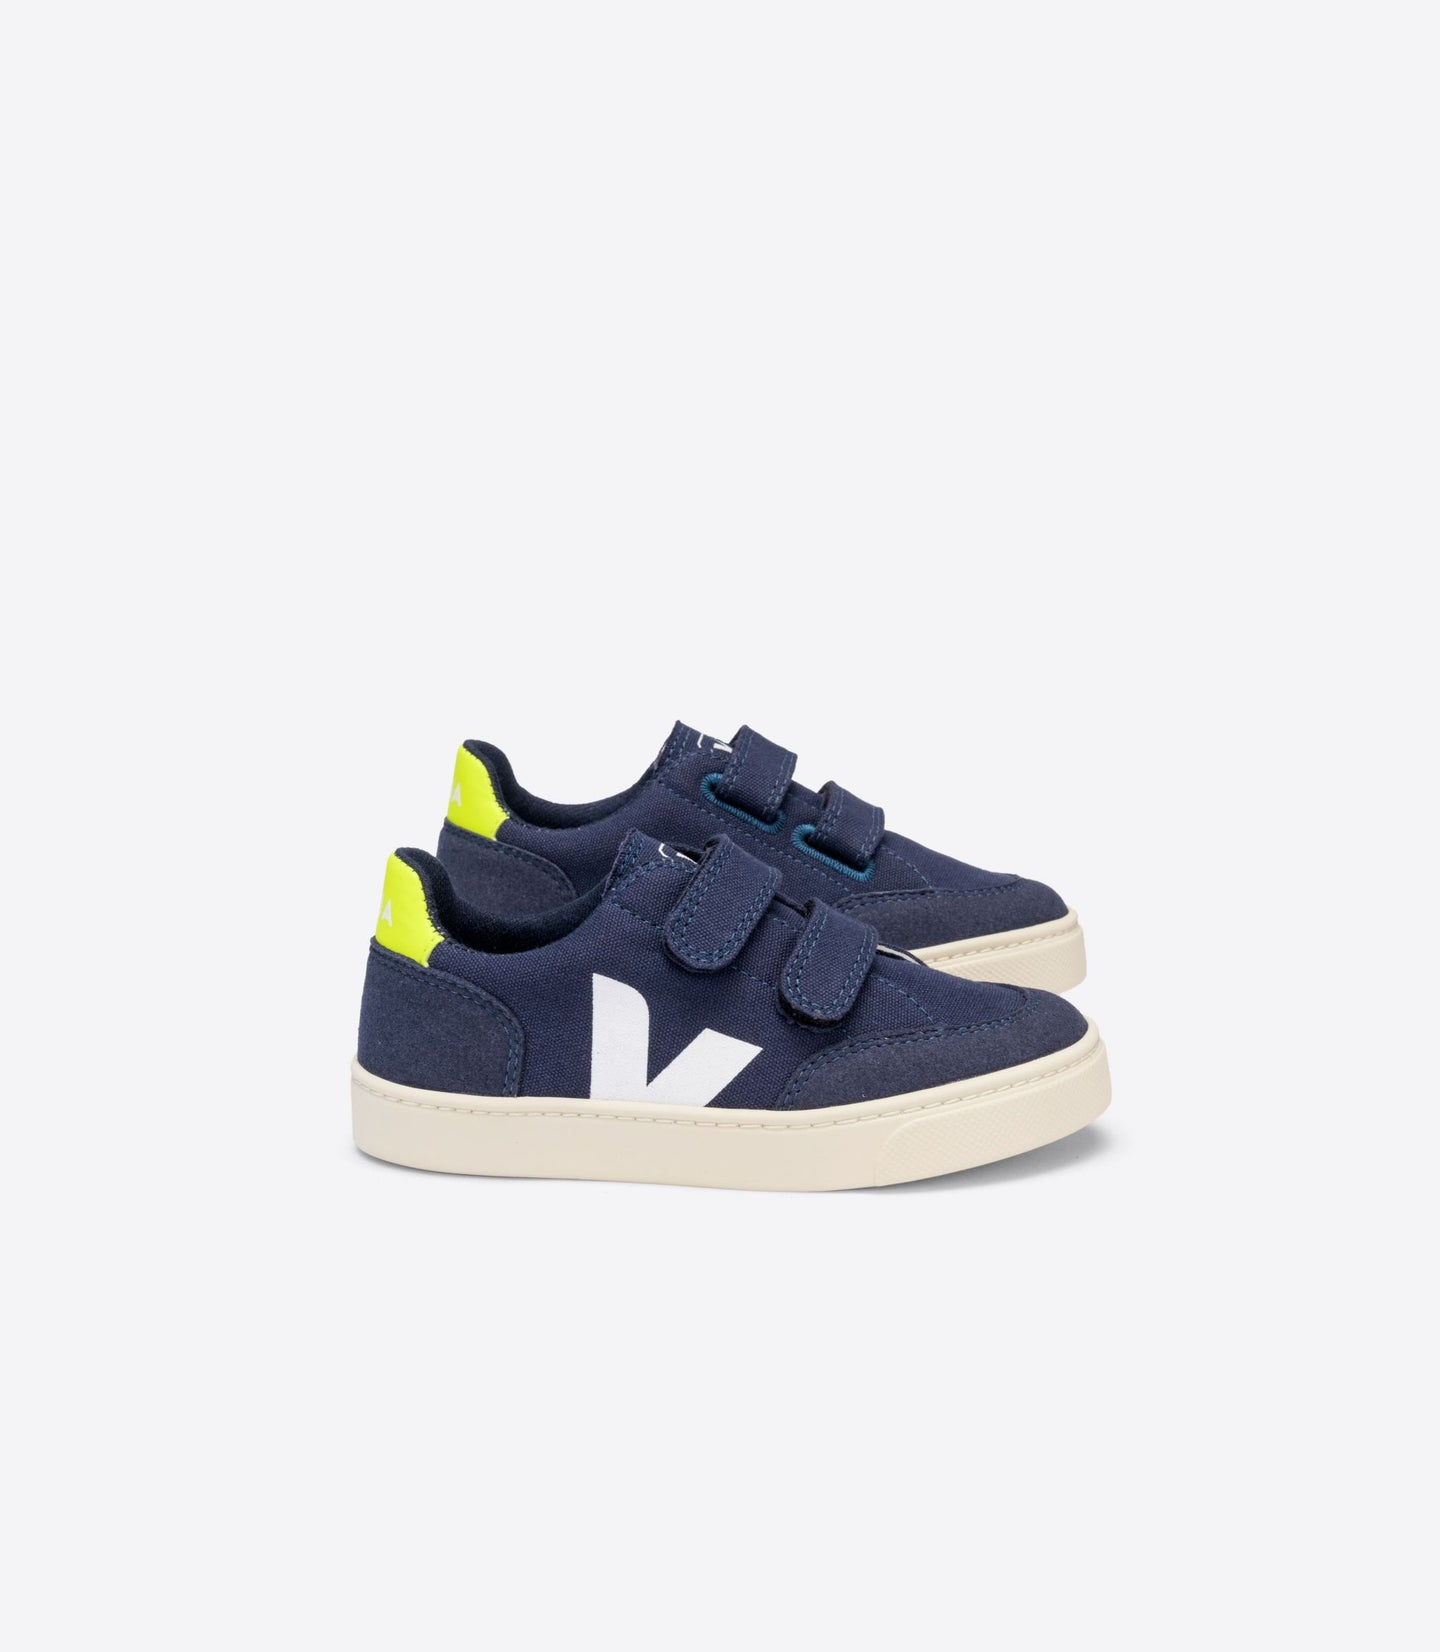 V-12 VELCRO CANVAS SNEAKERS